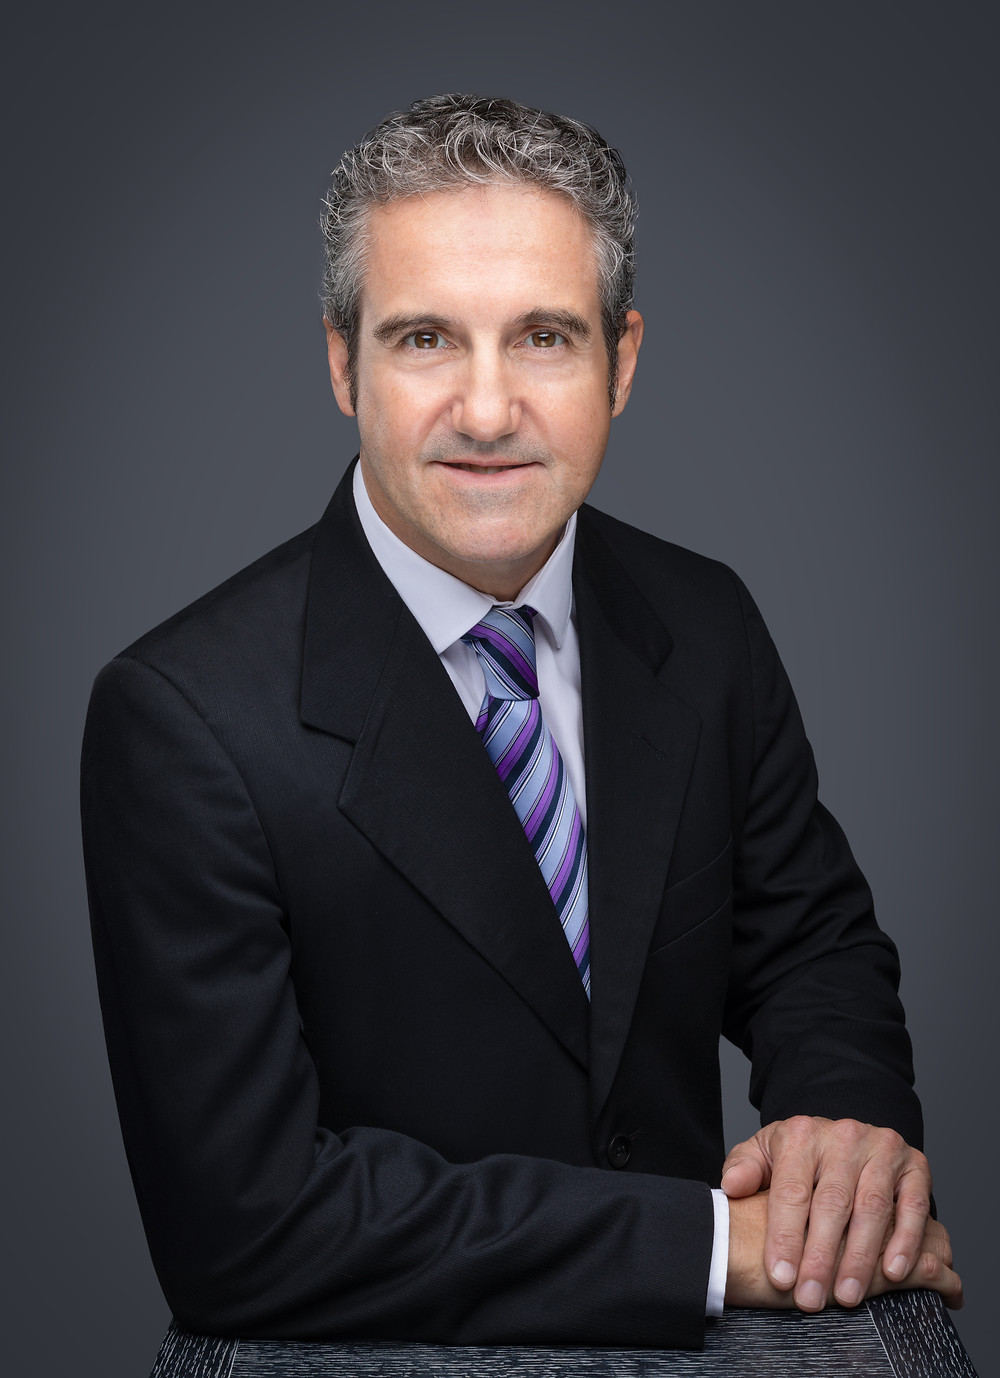 Man posing for a corporate headshot